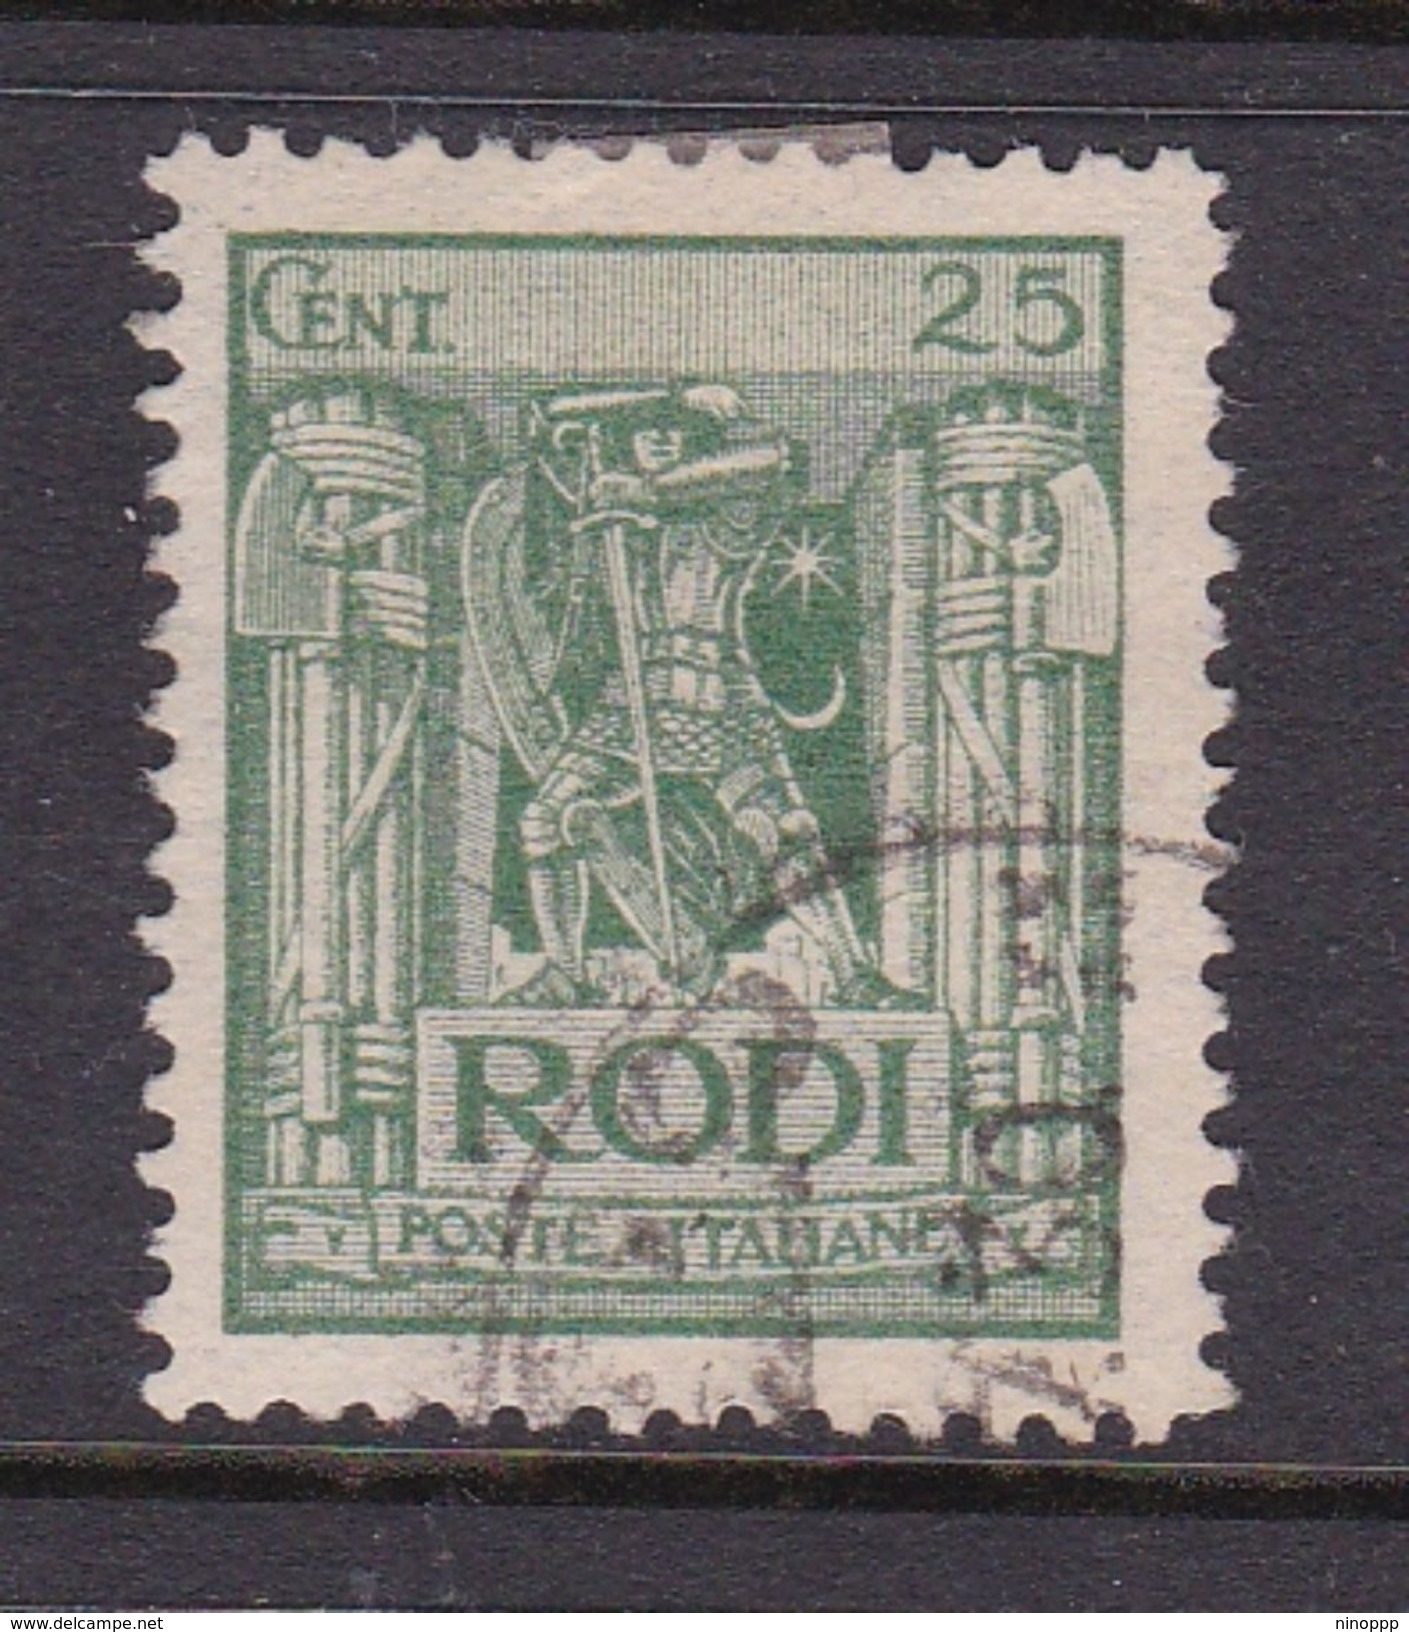 Italy-Colonies And Territories-Aegean General Issue-Rodi S6 1929 Pictorials Perf 11 25c Green Used - Italy